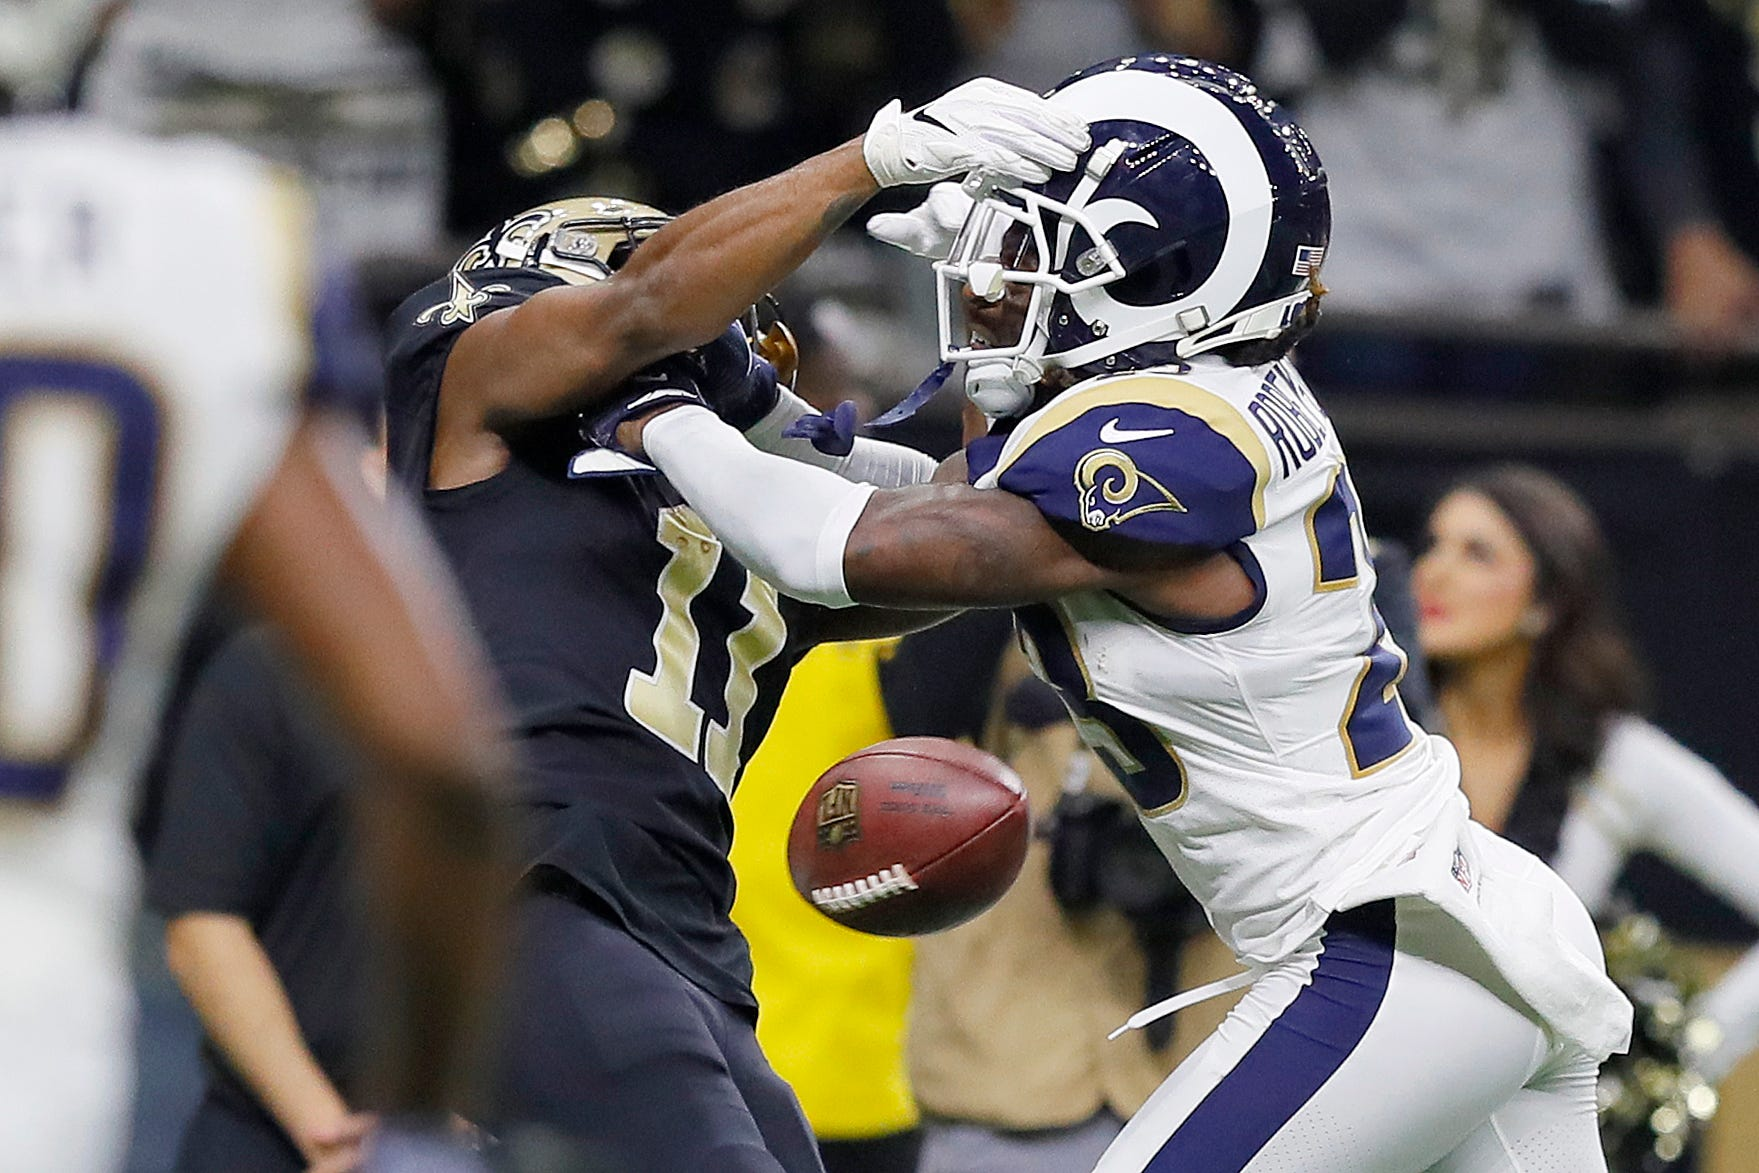 ... NFL fines Rams DB Nickell Robey-Coleman for hit on Saints receiver  Tommylee Lewis USA TODAY - 14 19 PM ET January 25 9c672ee0b